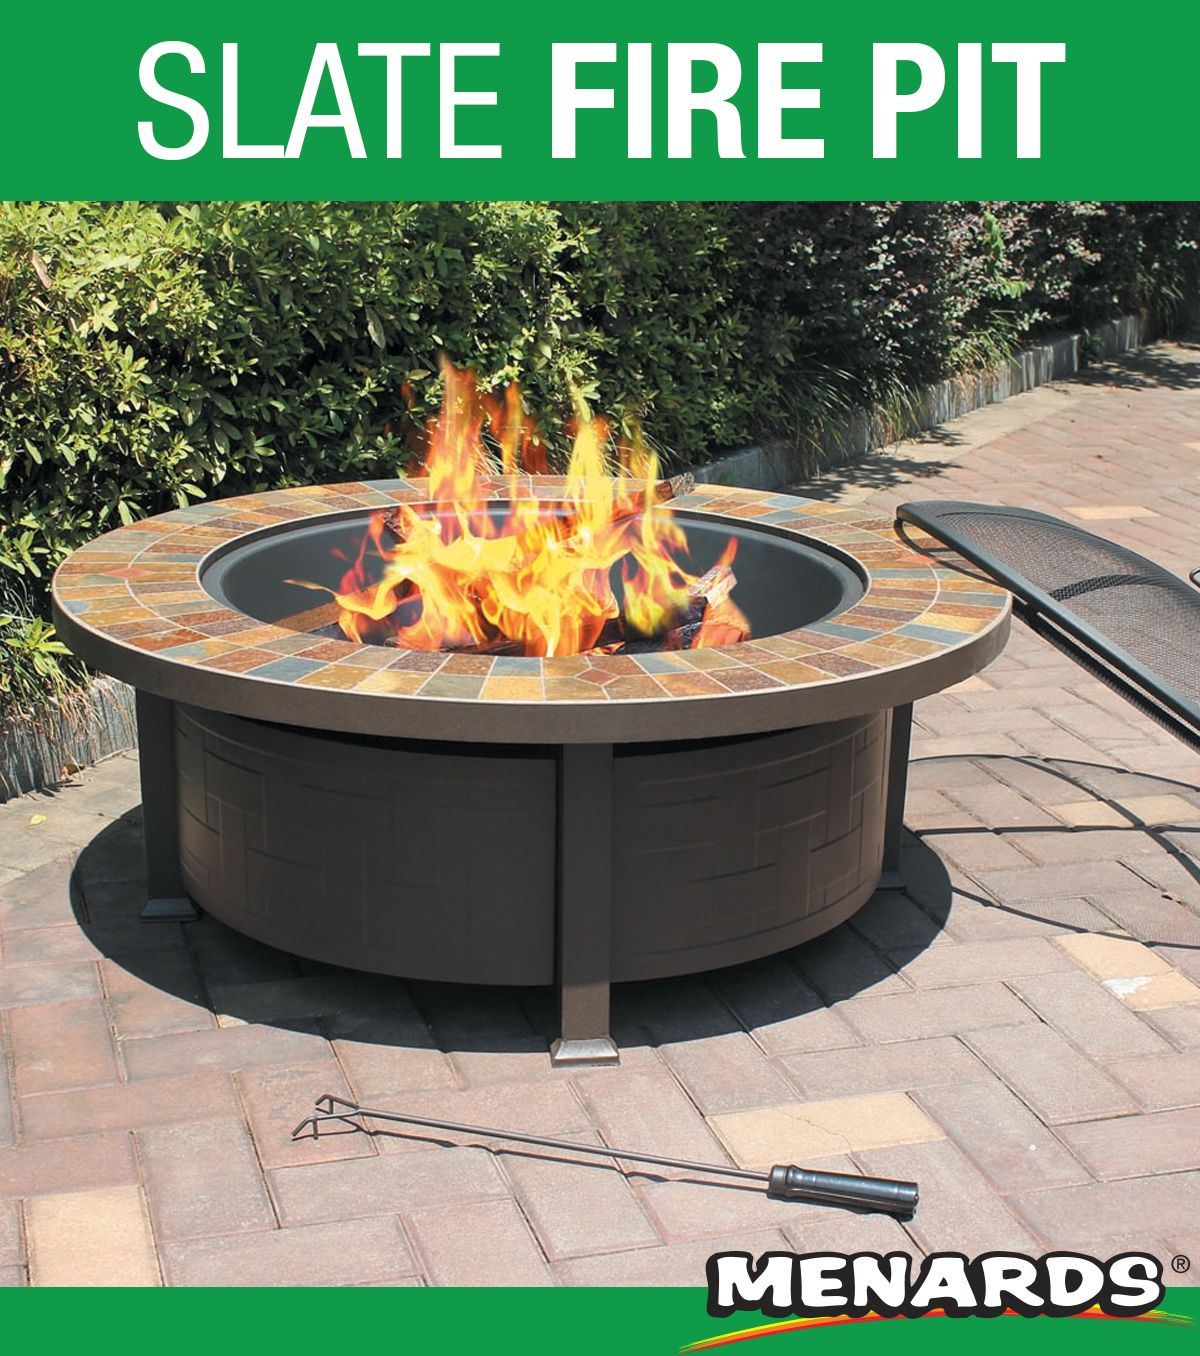 The Backyard Creations 44 Wood Burning Firepit Table Allows You To Comfortably Enjoy The Evenings Backyard Creations Fire Pit Backyard Outdoor Decor Backyard